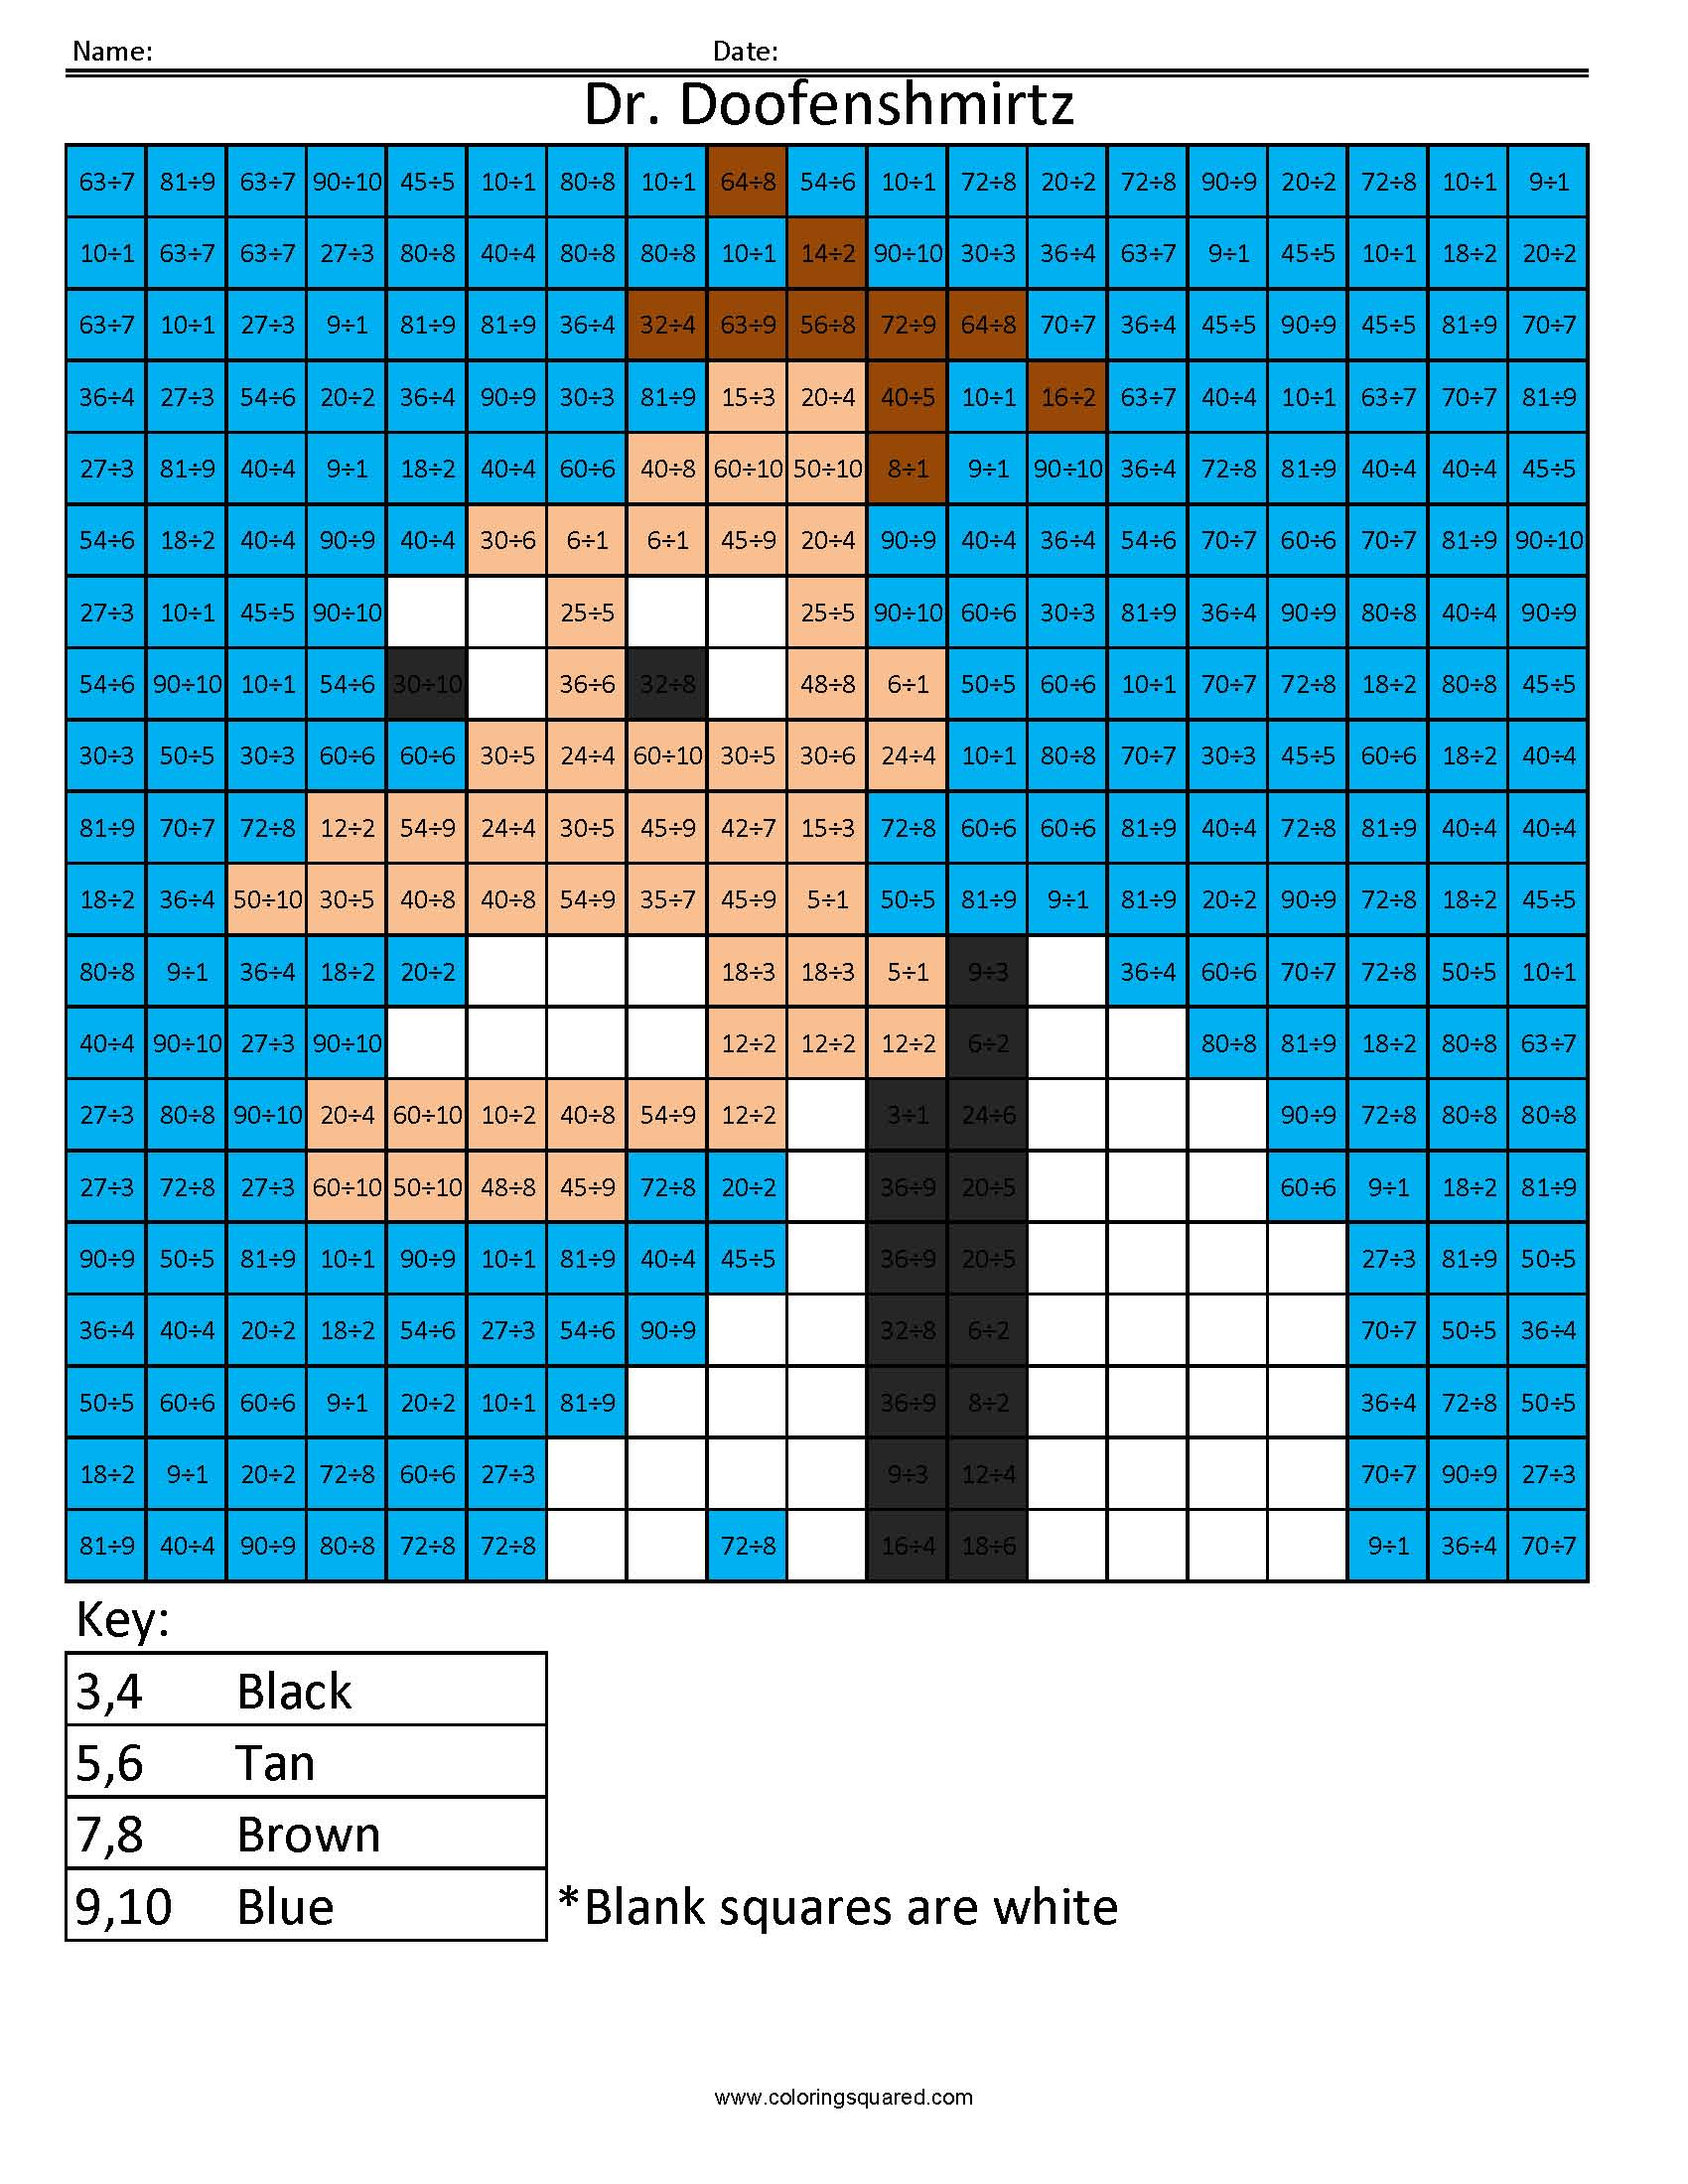 Dr. Doofenshmirtz- Advanced Division - Coloring Squared